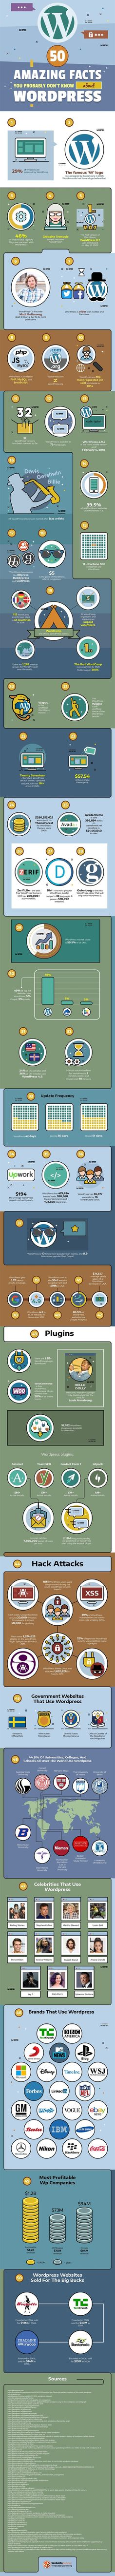 Infographics : Illustration Description 50 Surprising Facts You Probably Don't Know About WordPress Leaflet Distribution, How To Start A Blog, How To Find Out, Wordpress Org, Software, Blogging, Web 2.0, Seo Tips, New Things To Learn